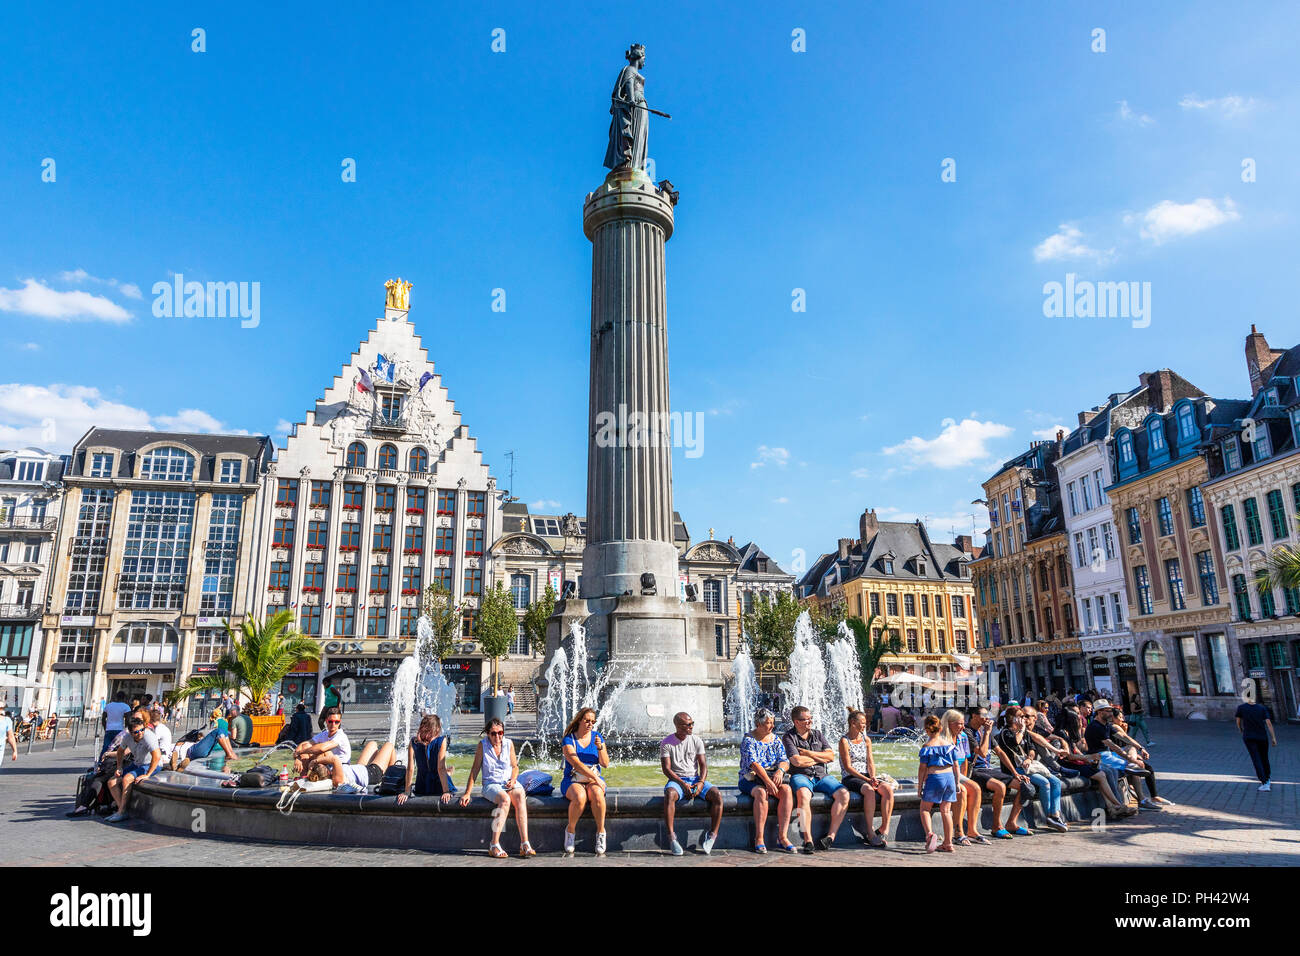 Place du General de Gaulle with the Column of the Godess, Lille, France. The column, known as La Colonne de la Deese is a monument to the local heroes - Stock Image